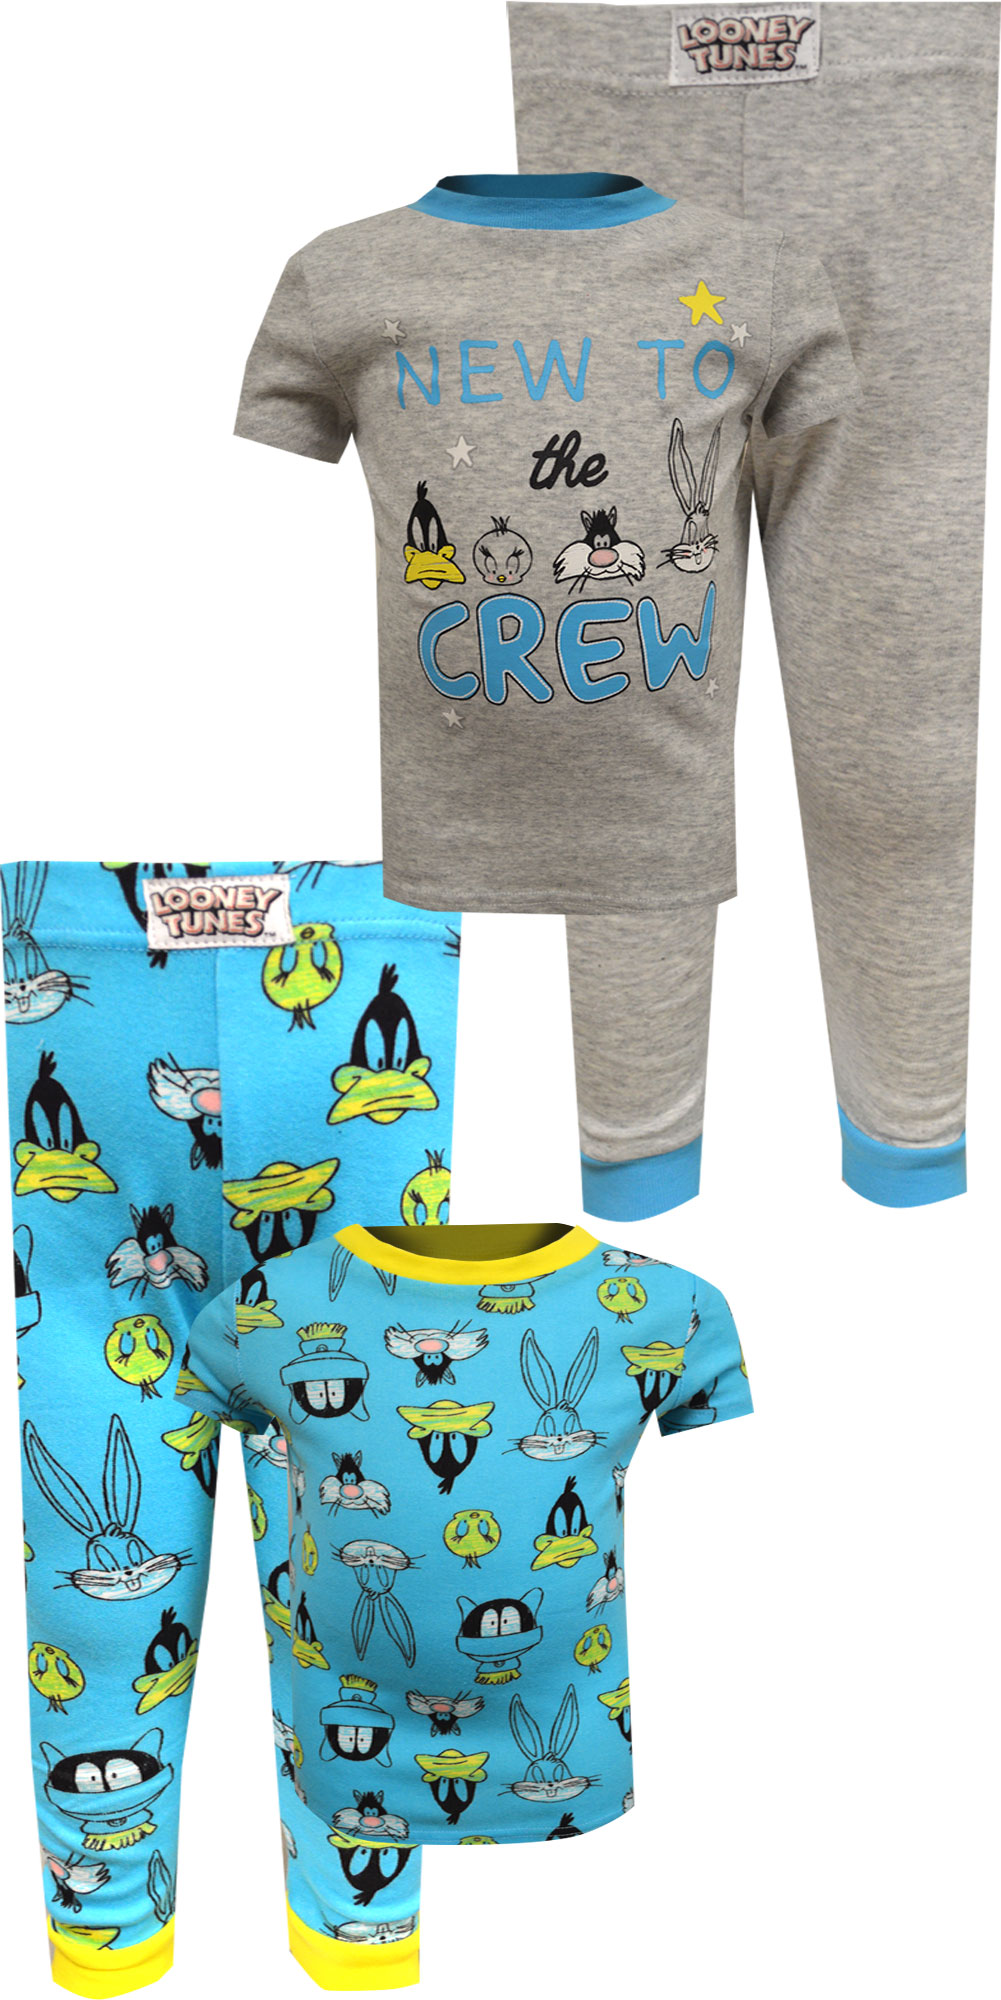 Image of Looney Tunes New to the Crew Cotton 4 Pc Infant Pajama for boys